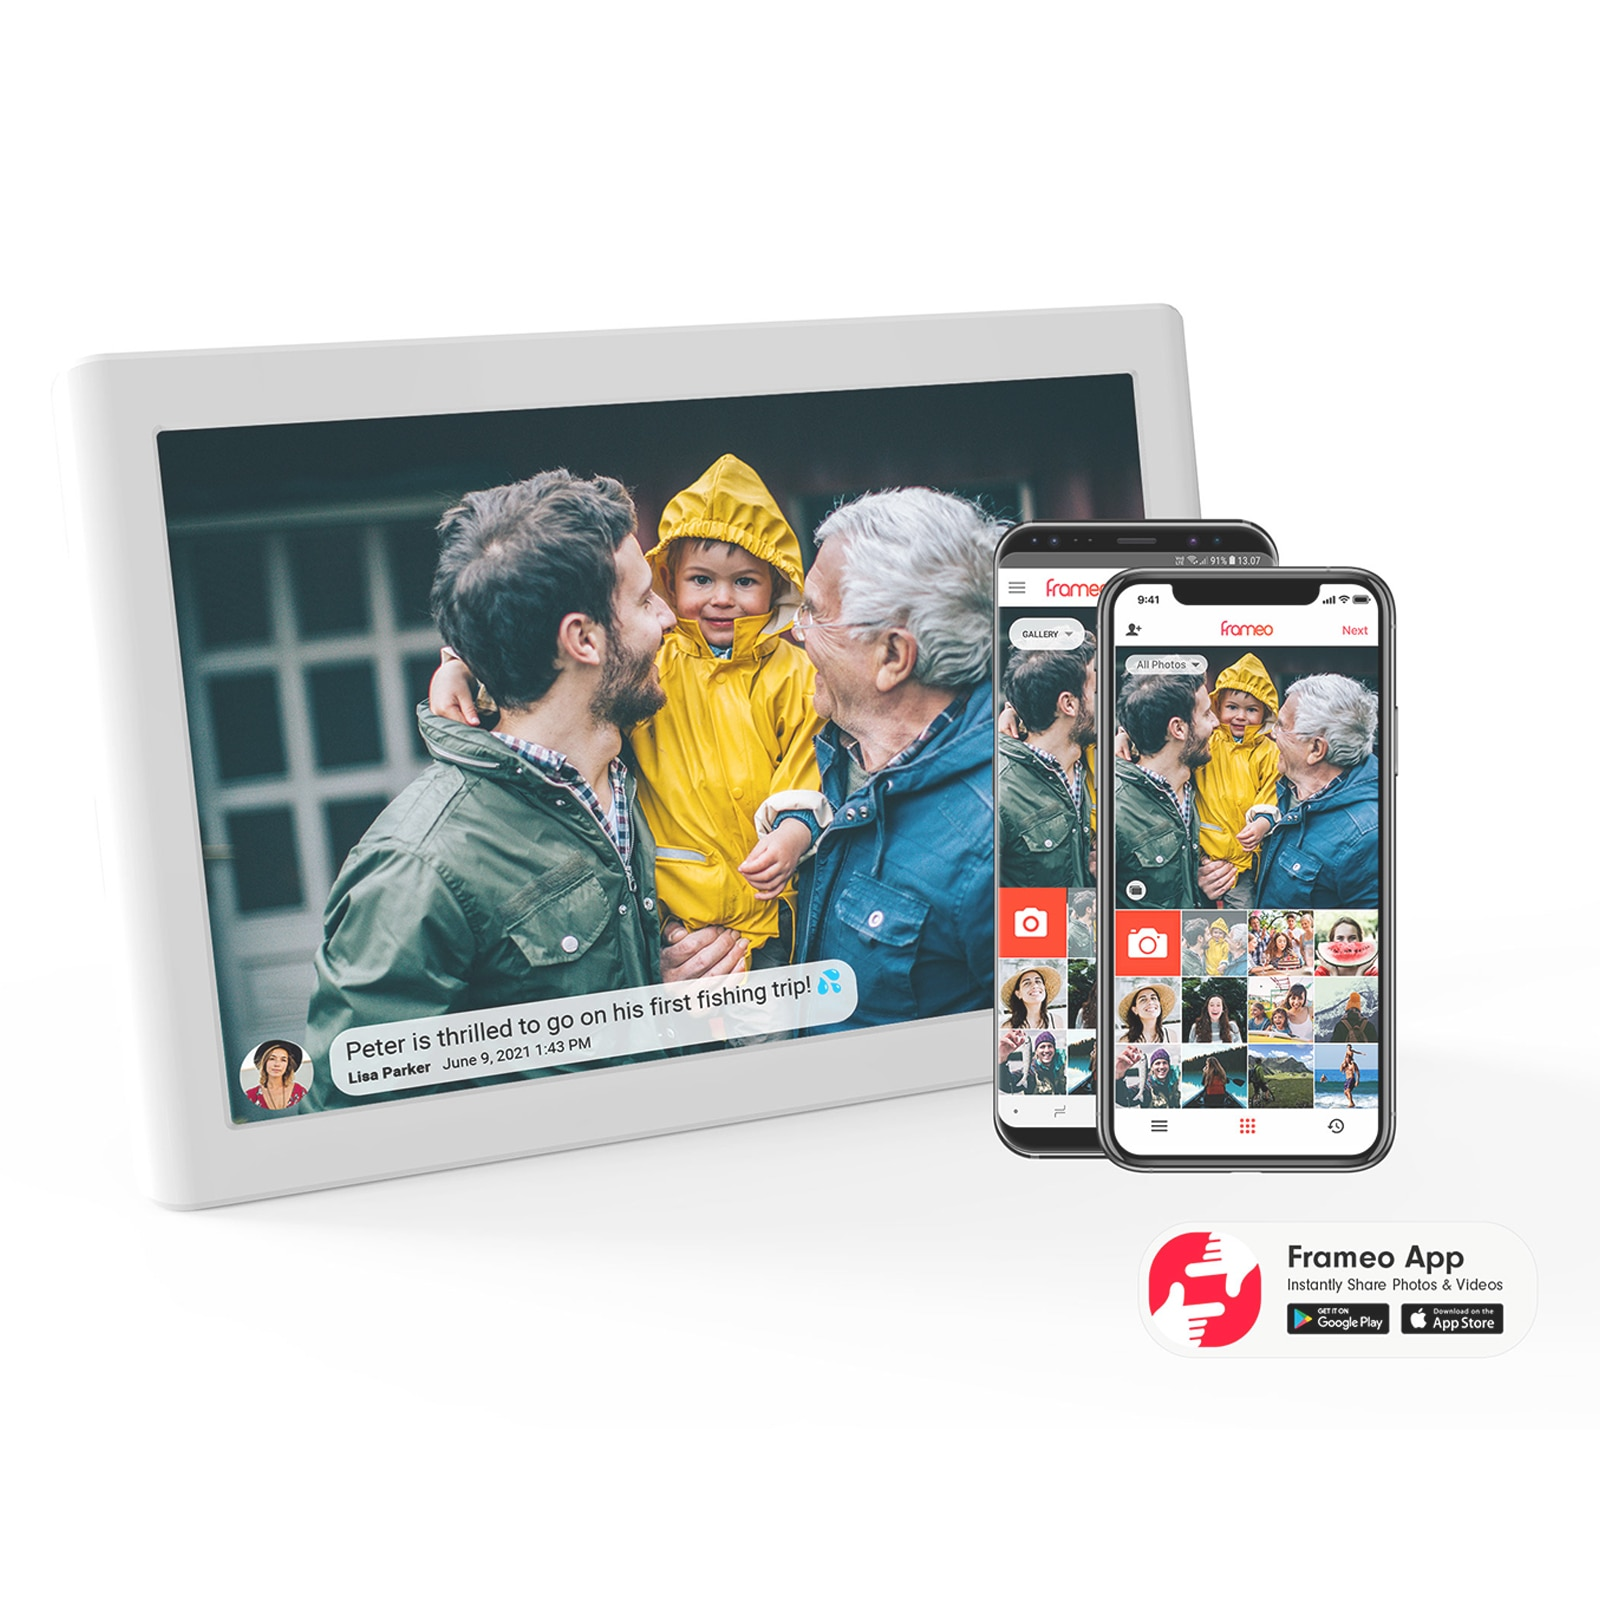 10.1 Inch Smart wifi cloud Digital Picture Frame, Share Video Clips and Photos Instantly via facebook, twitter, Frameo app